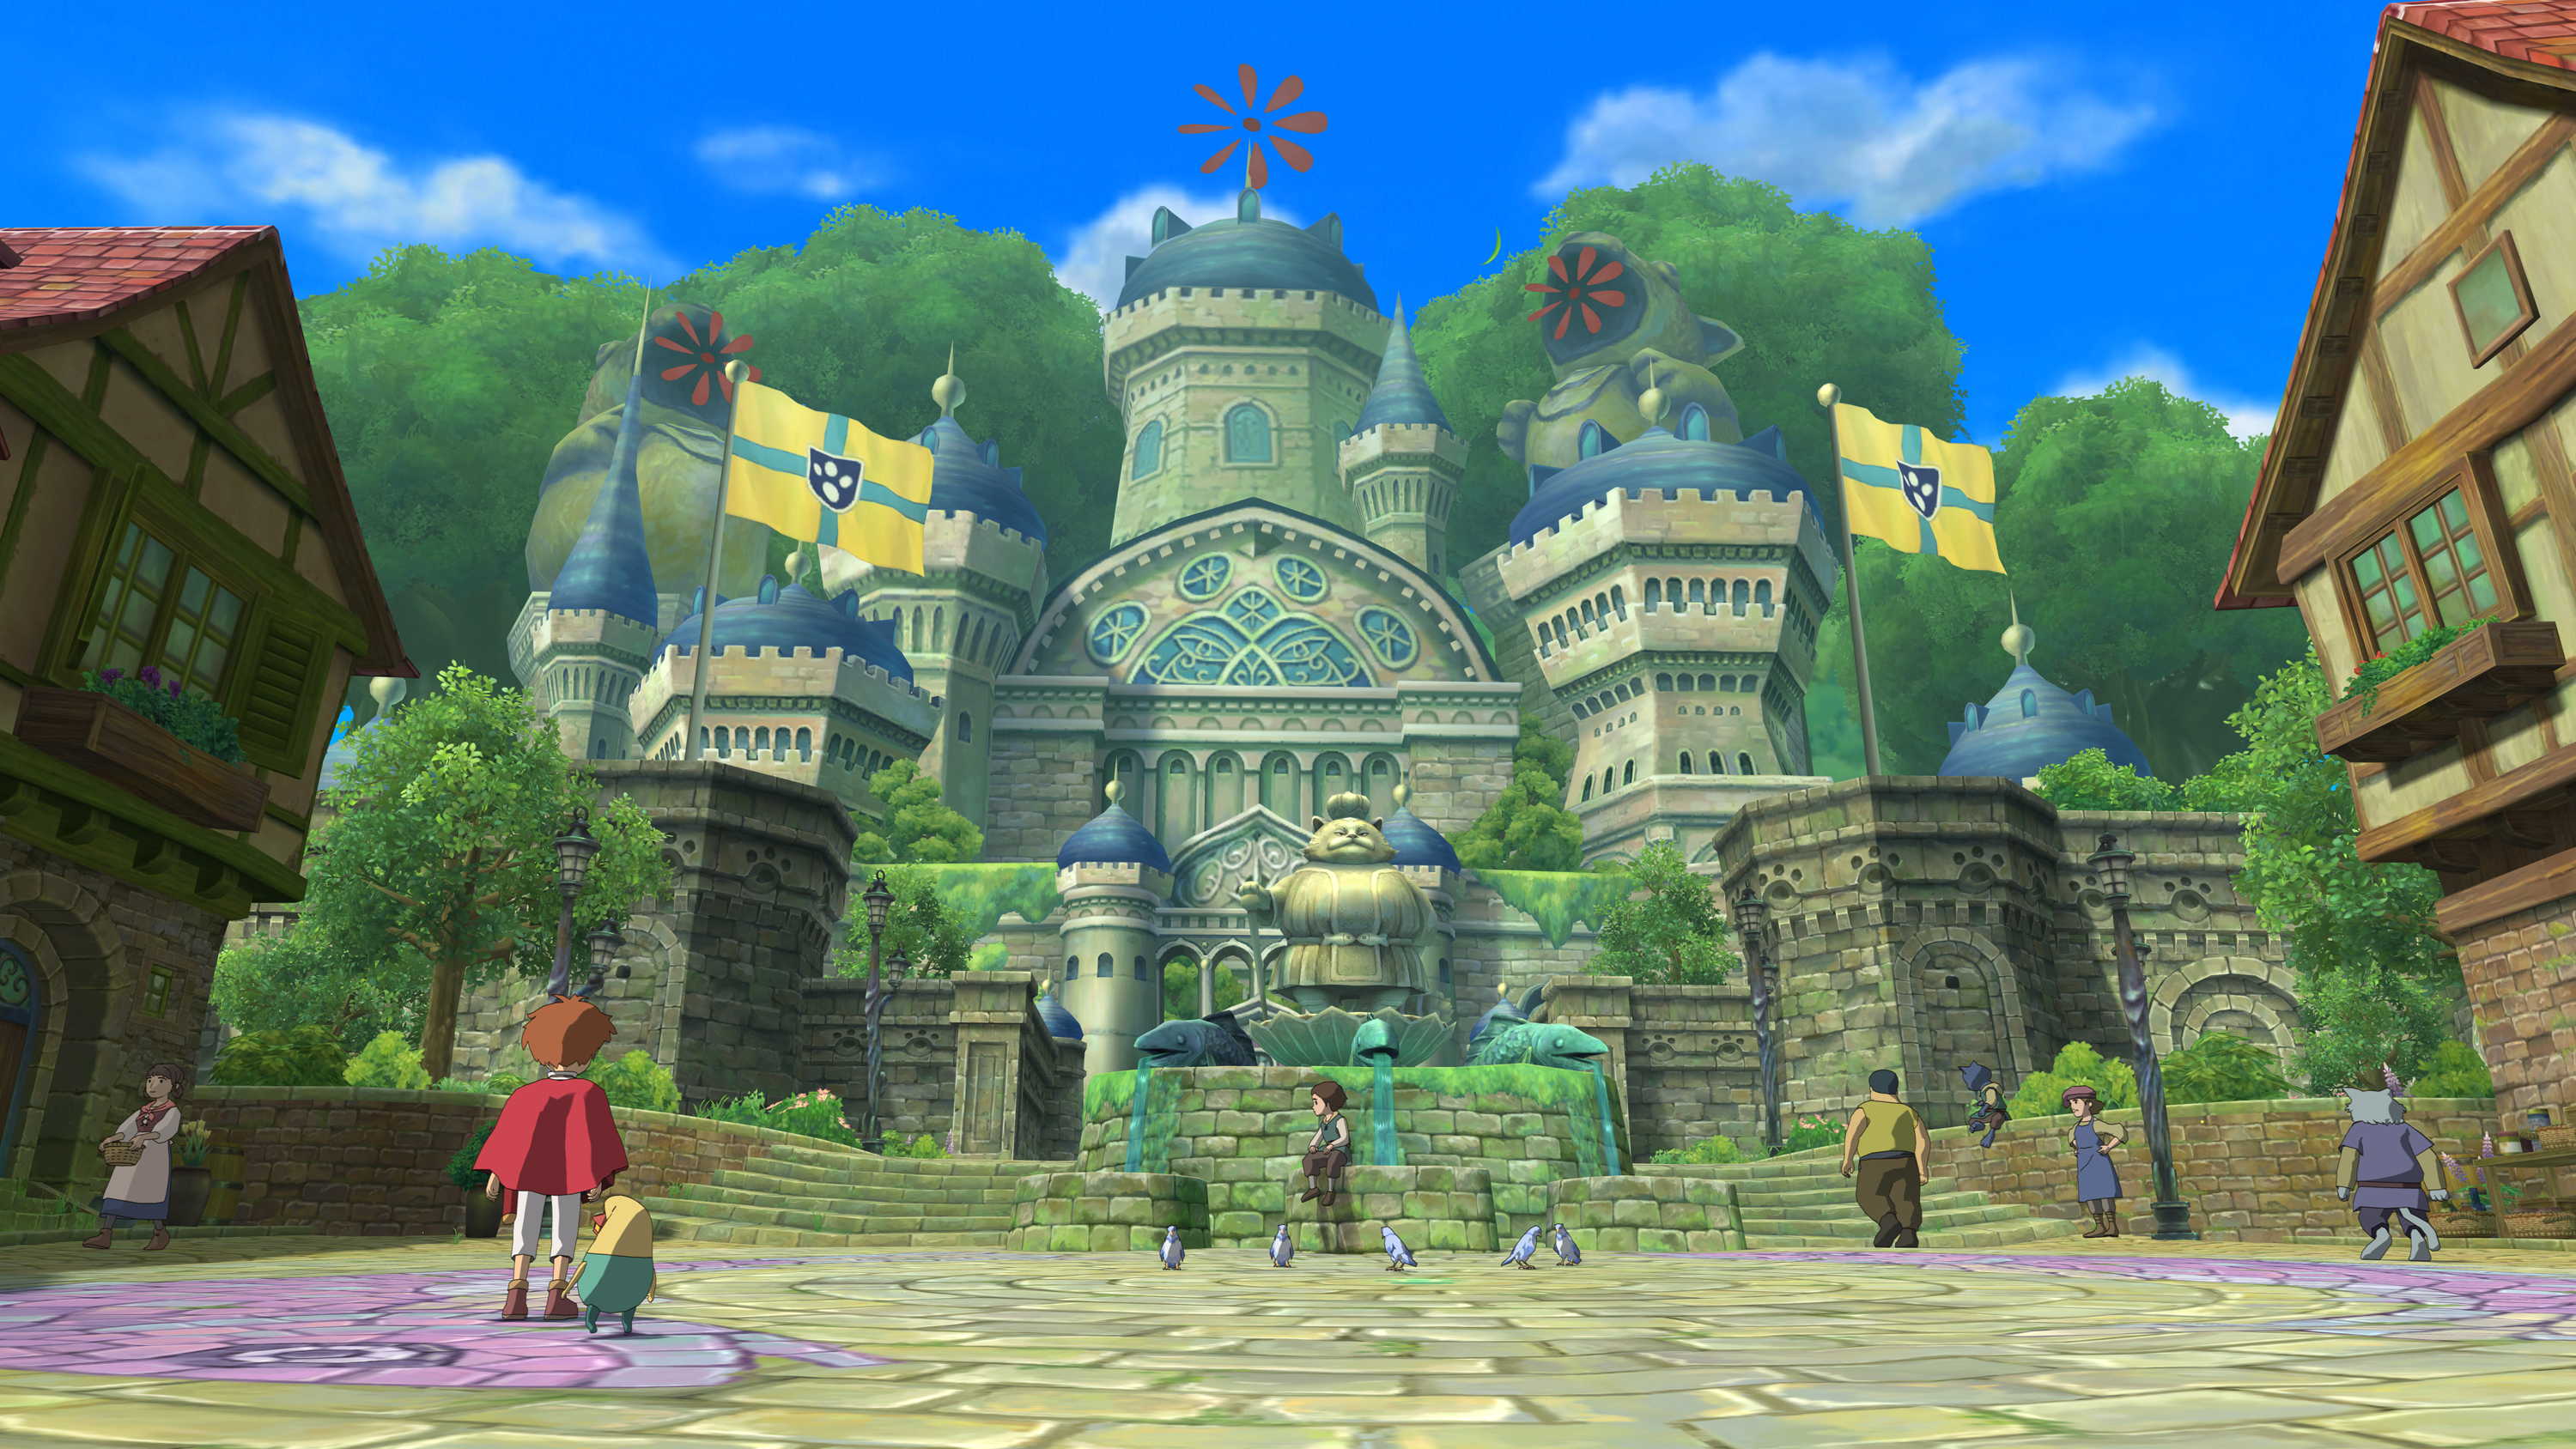 18 Ni No Kuni Hd Wallpapers Background Images Wallpaper Abyss